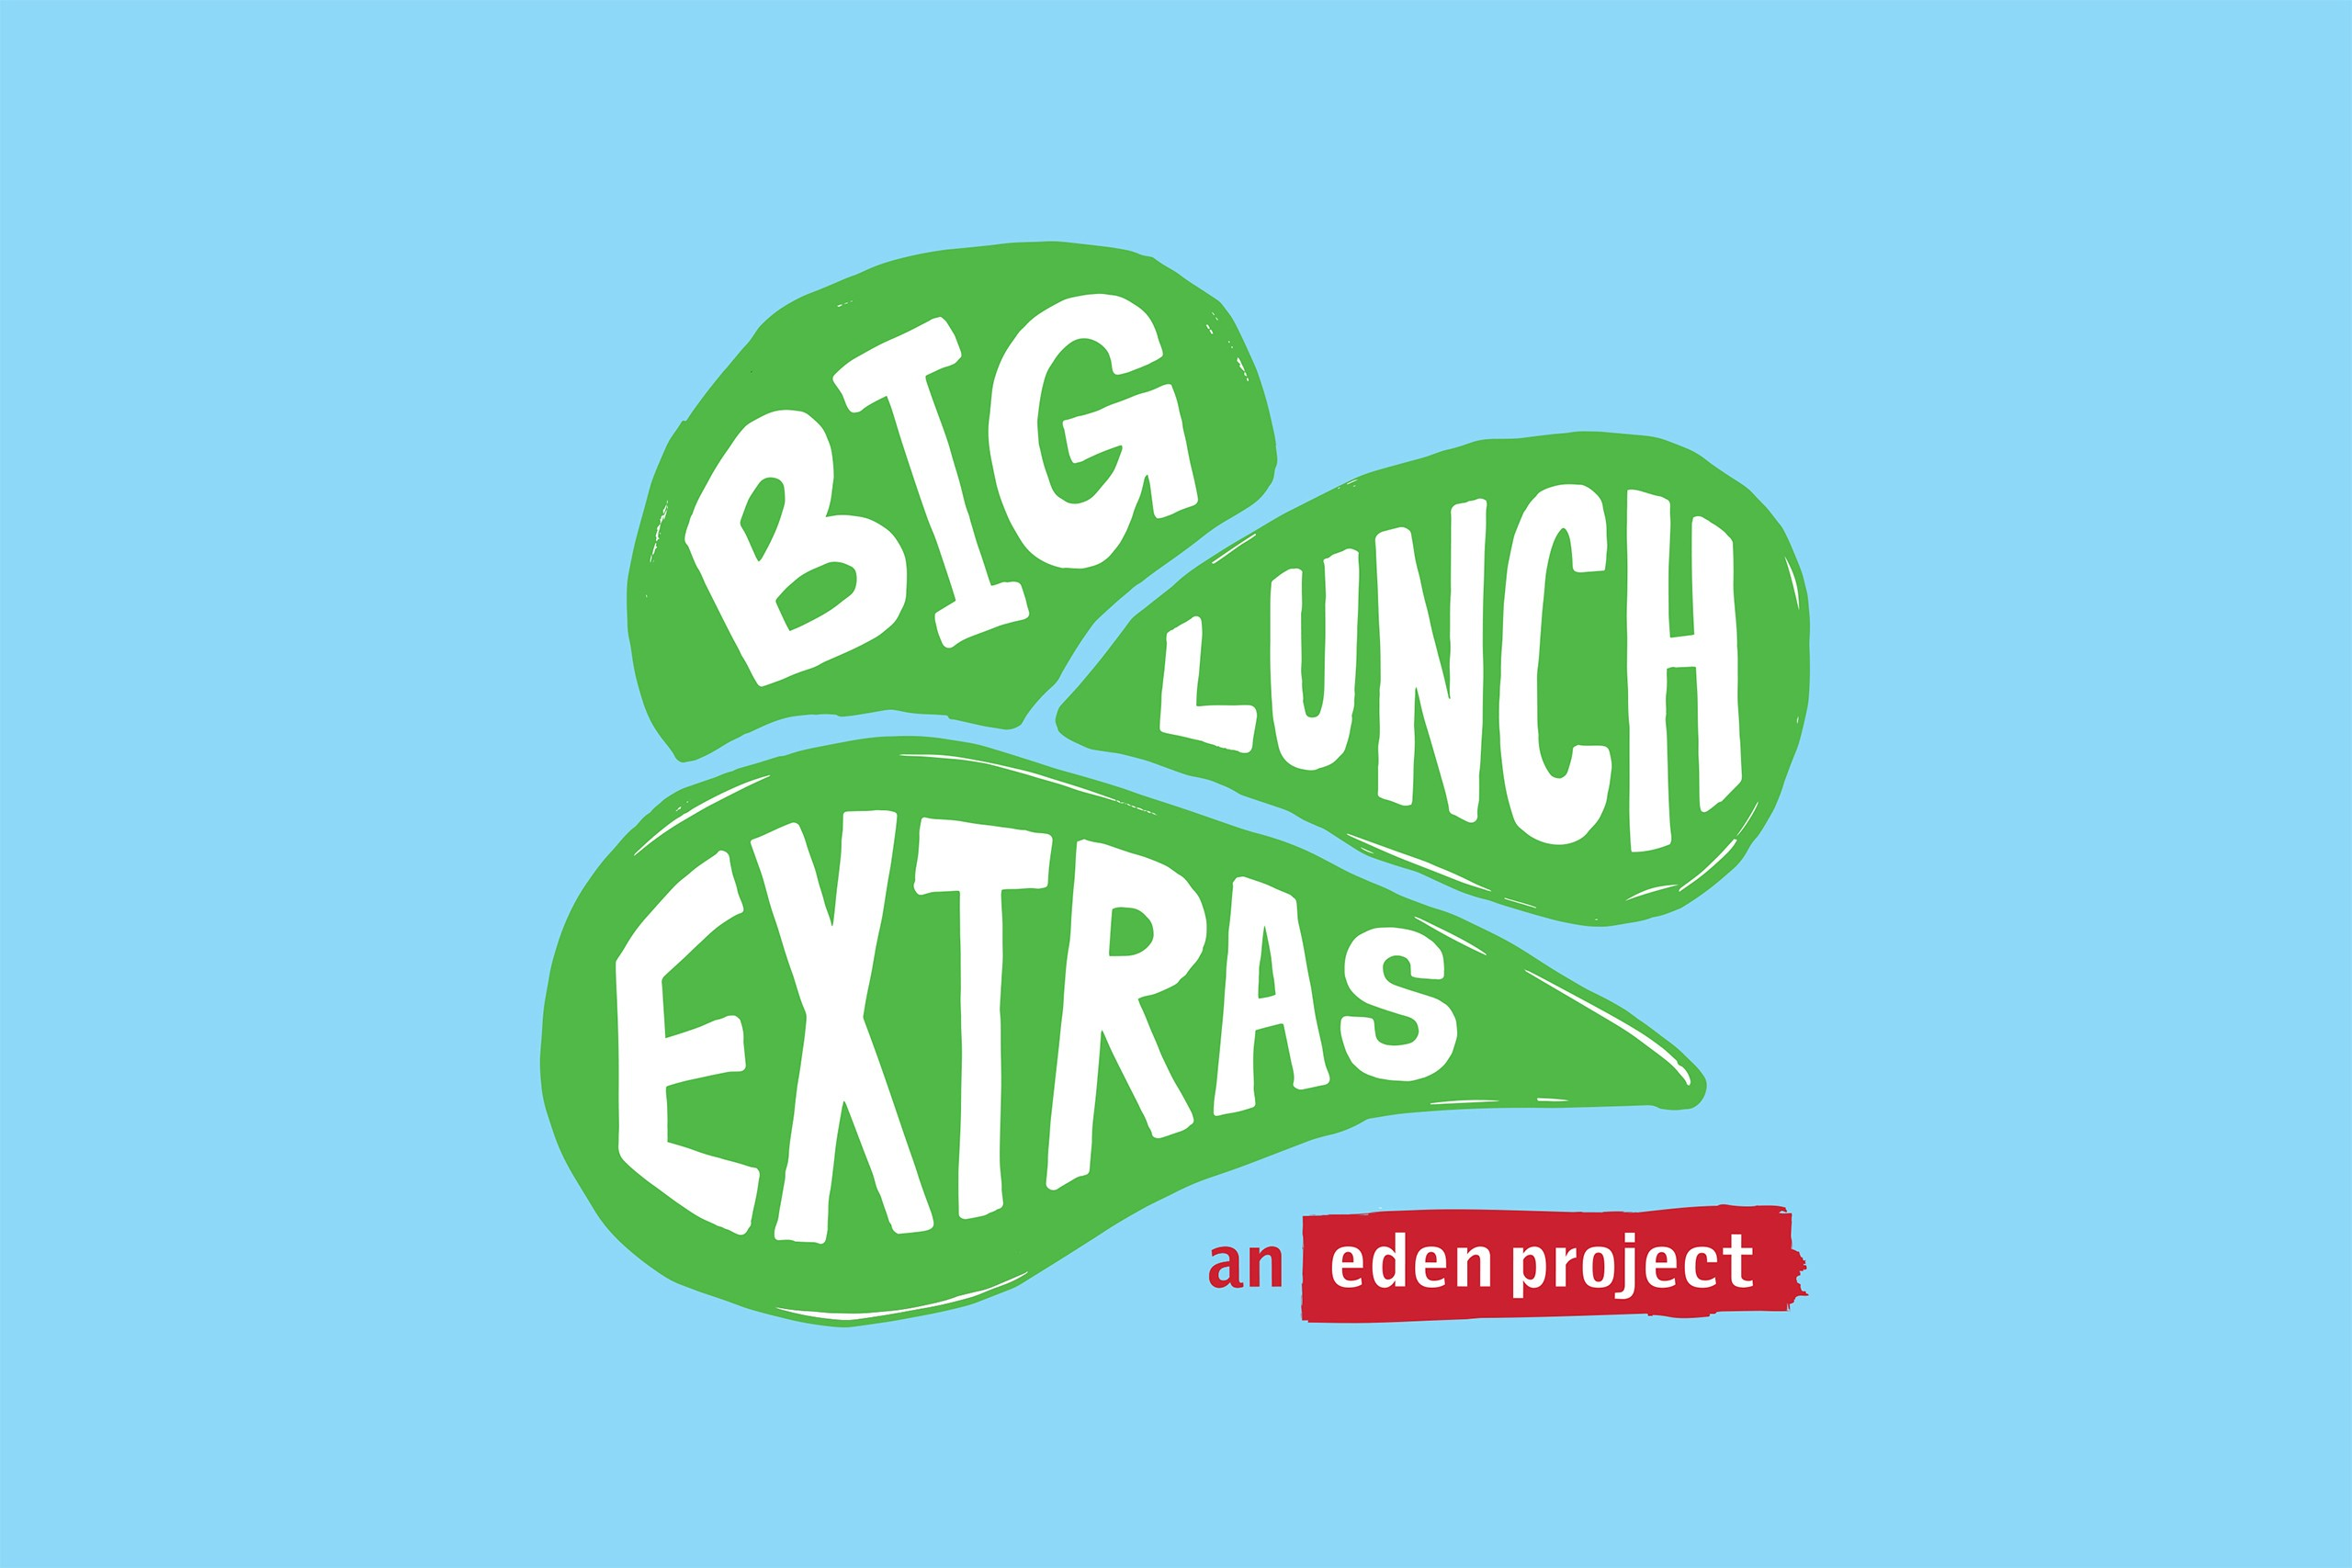 Eden Project - Big Lunch Extras